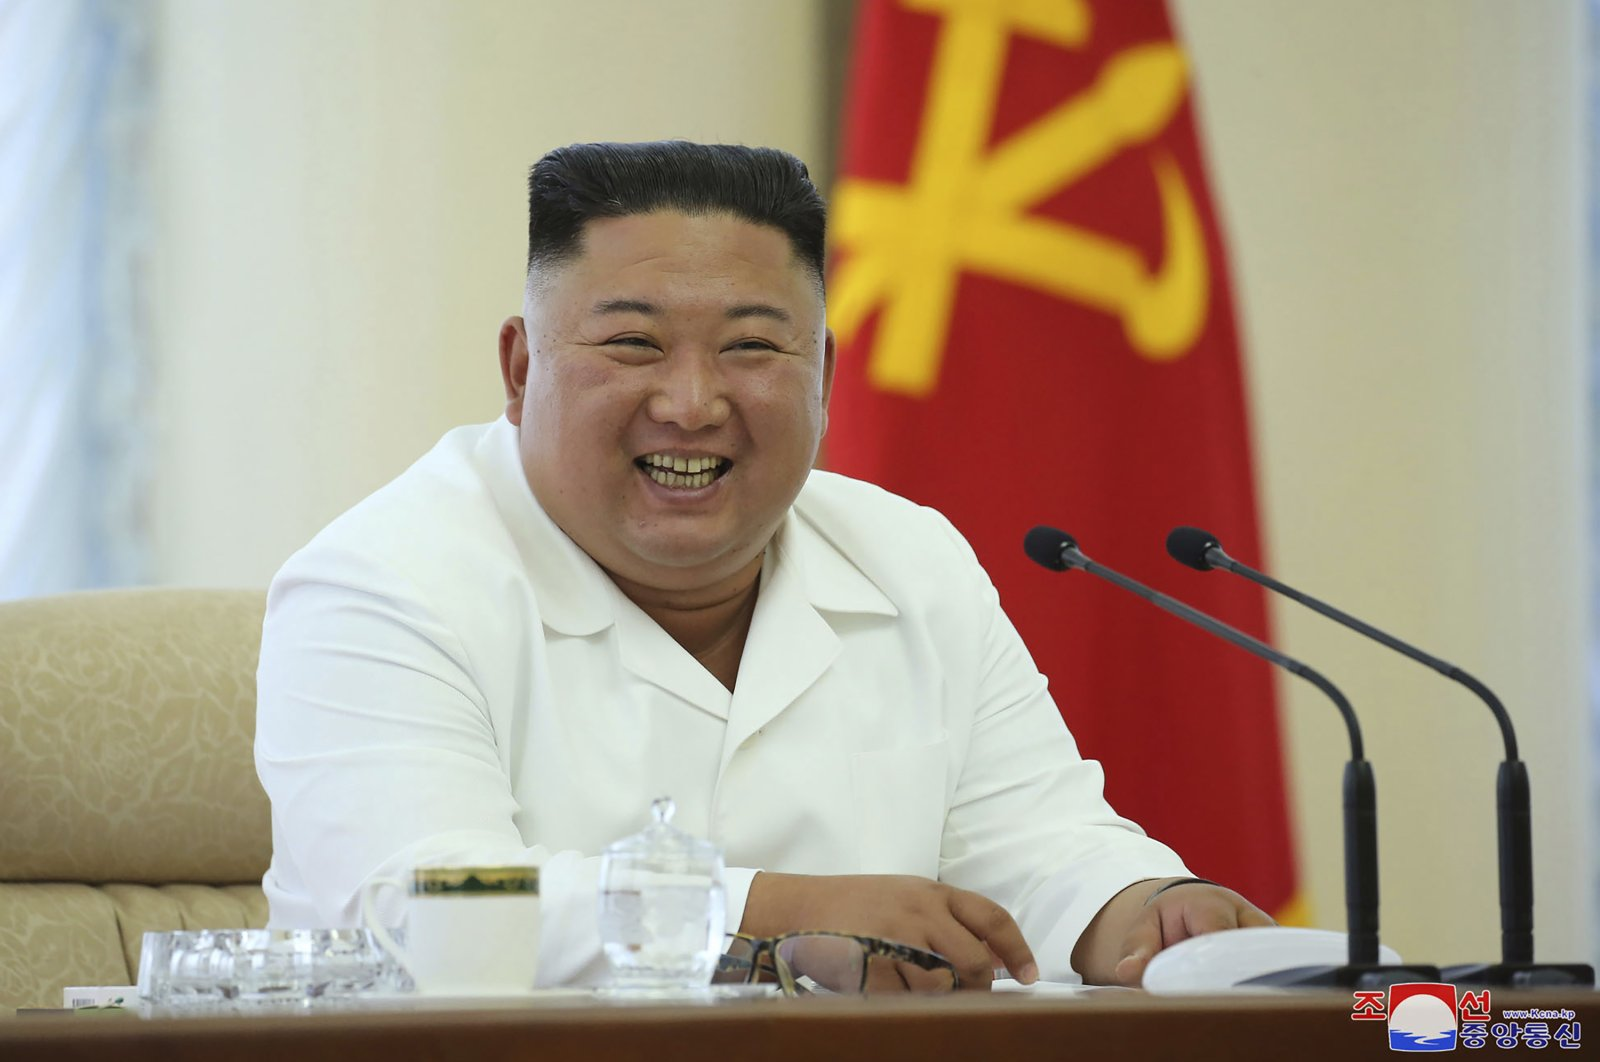 In this photo provided by the North Korean government, North Korean leader Kim Jong Un attends a meeting of the Politburo of the Central Committee of the Workers' Party of Korea in North Korea, June 7, 2020. (AP Photo)